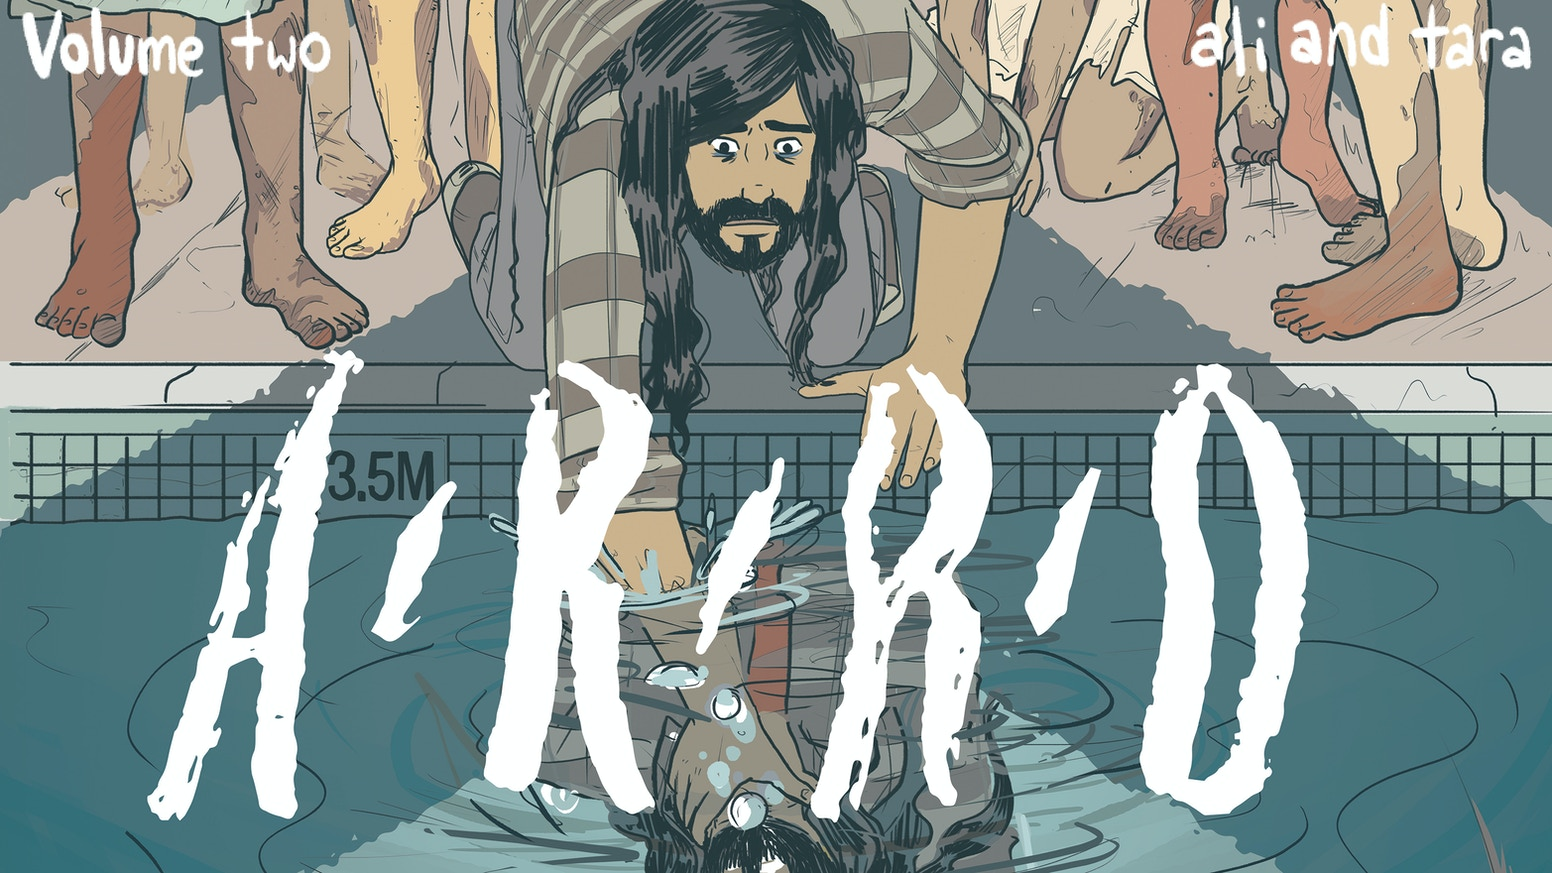 A full-color graphic novel that includes issues four and five, plus three mini chapters of ARRO, a post-apocalyptic adventure story.